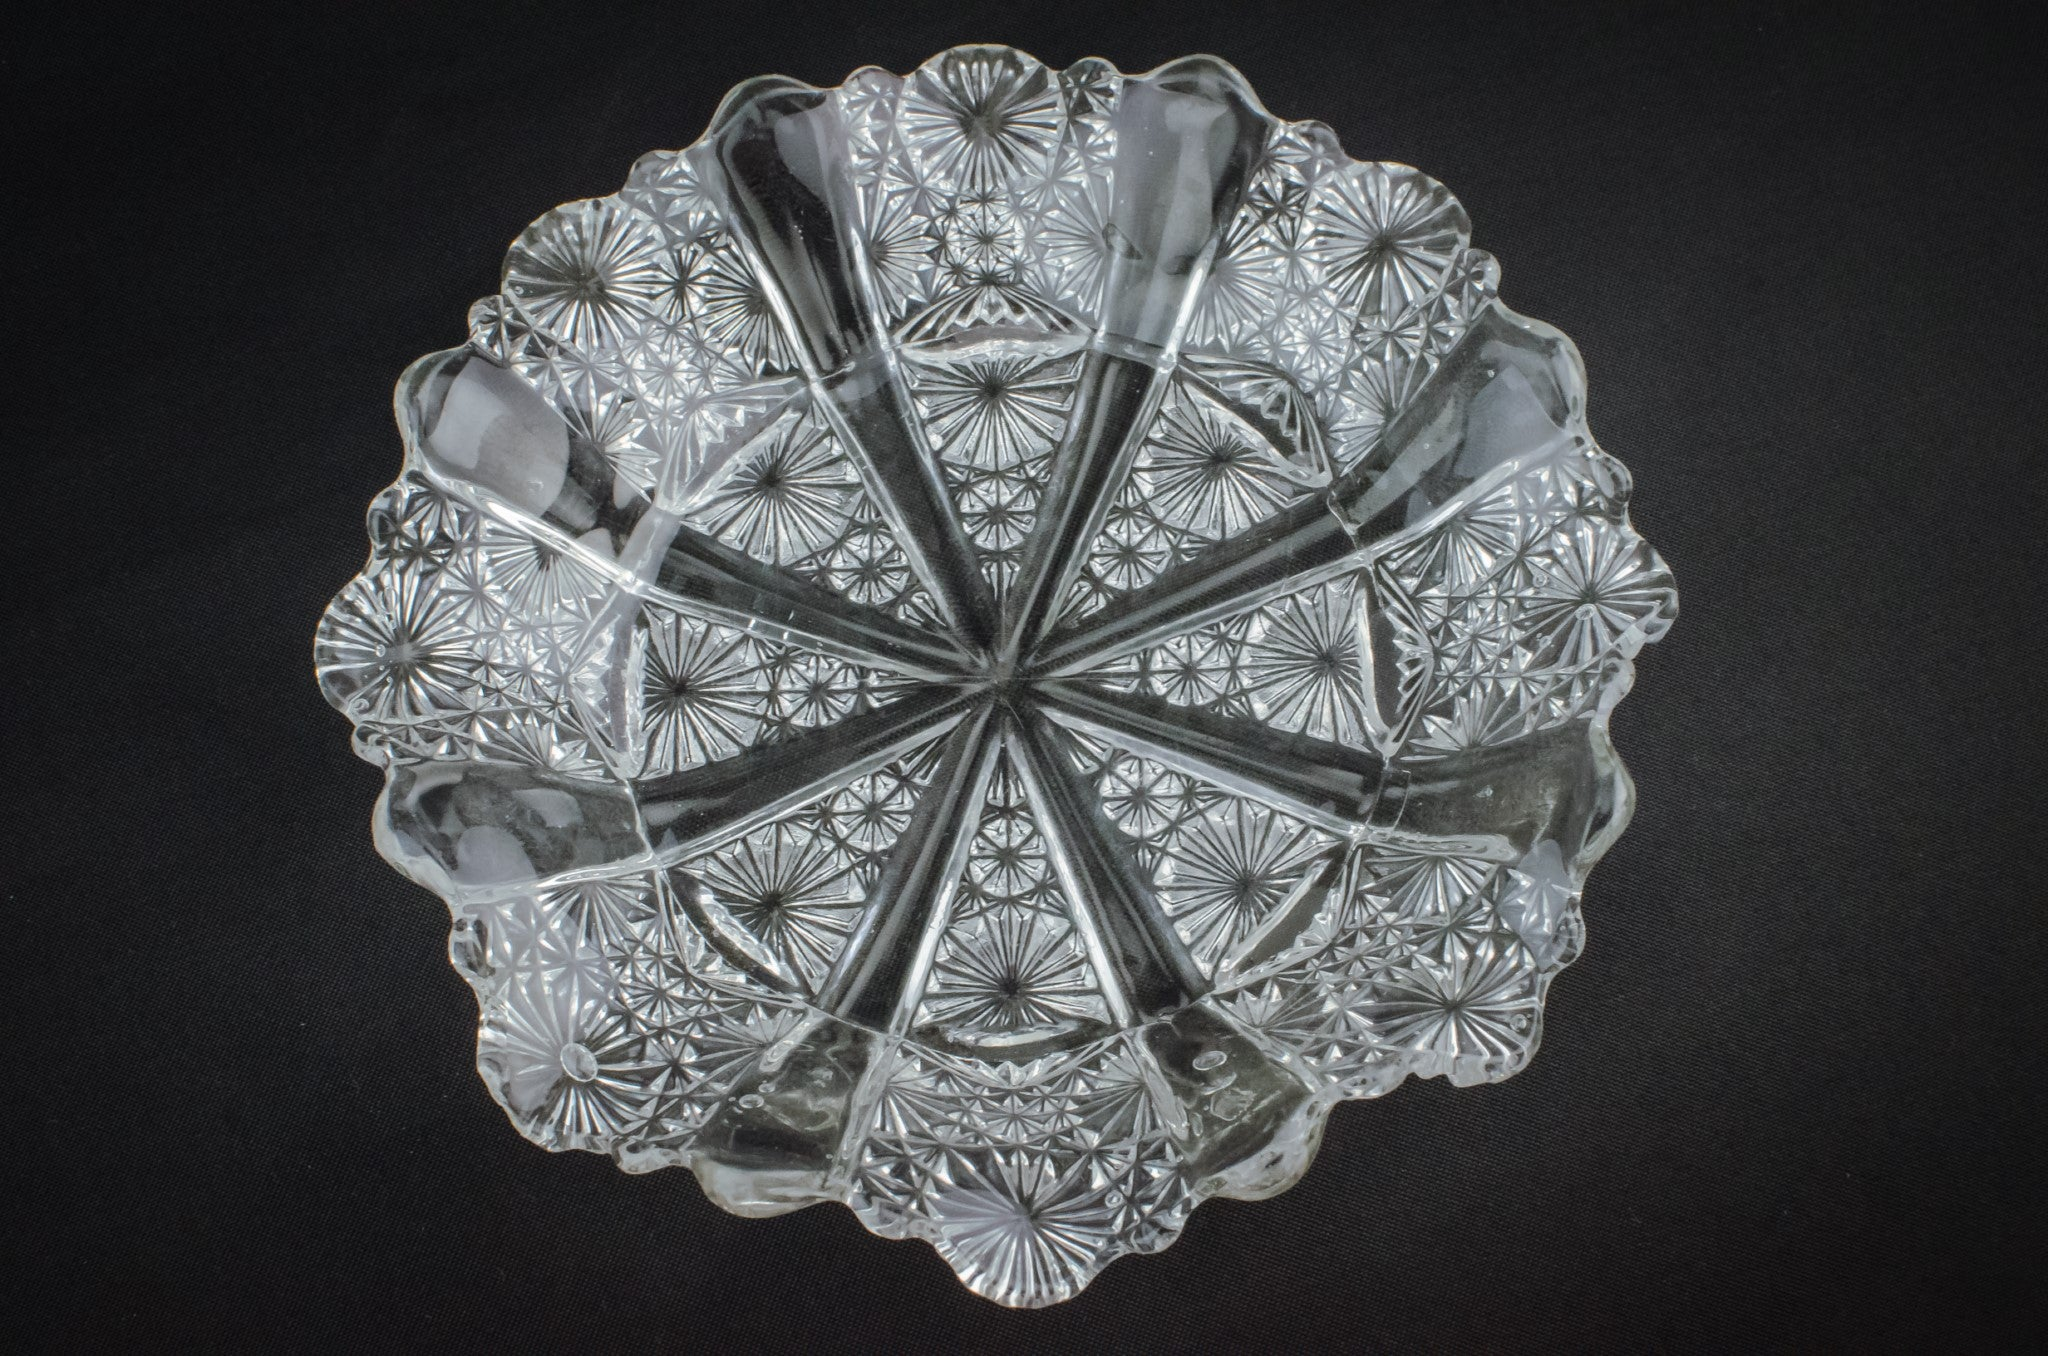 Art Deco glass serving dish